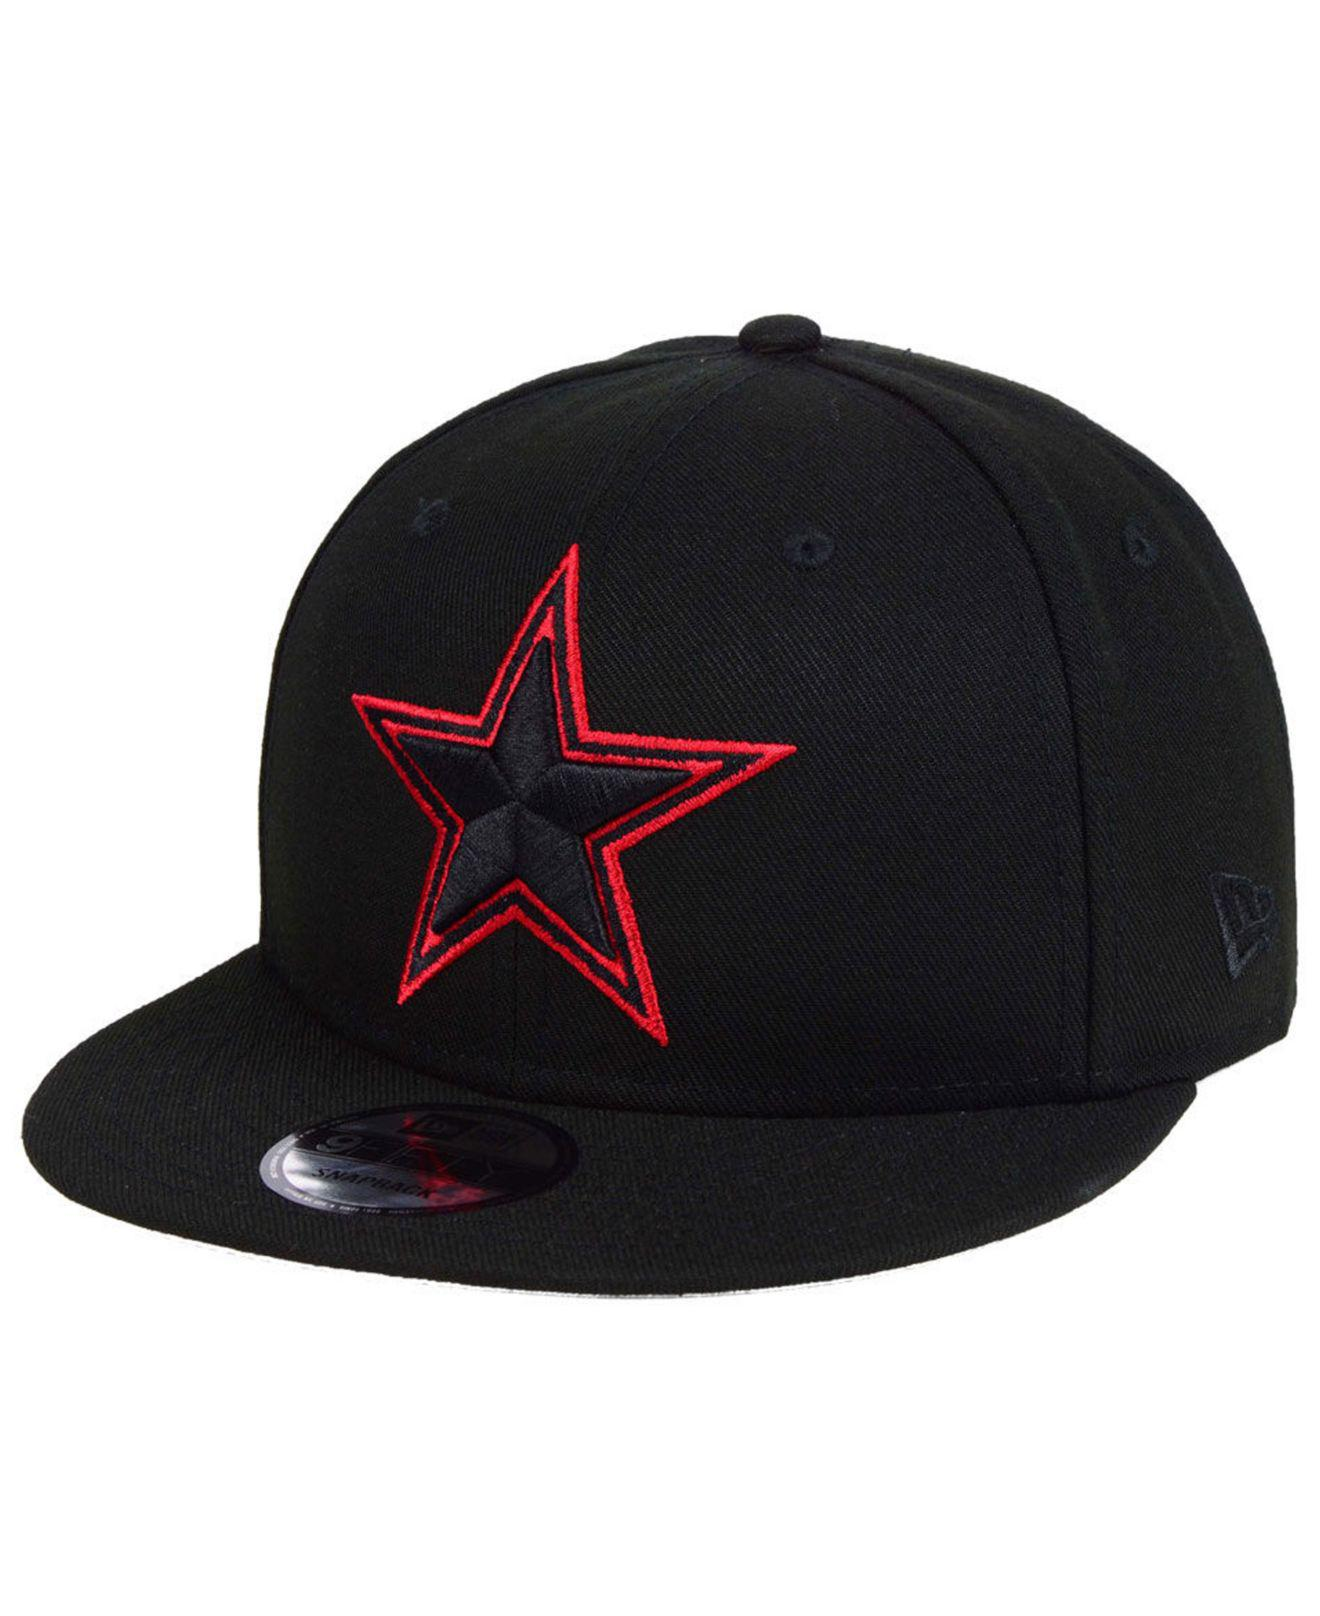 7710dc1a44b ... usa ktz. mens black dallas cowboys basic fashion 9fifty snapback cap  00a16 3ab03